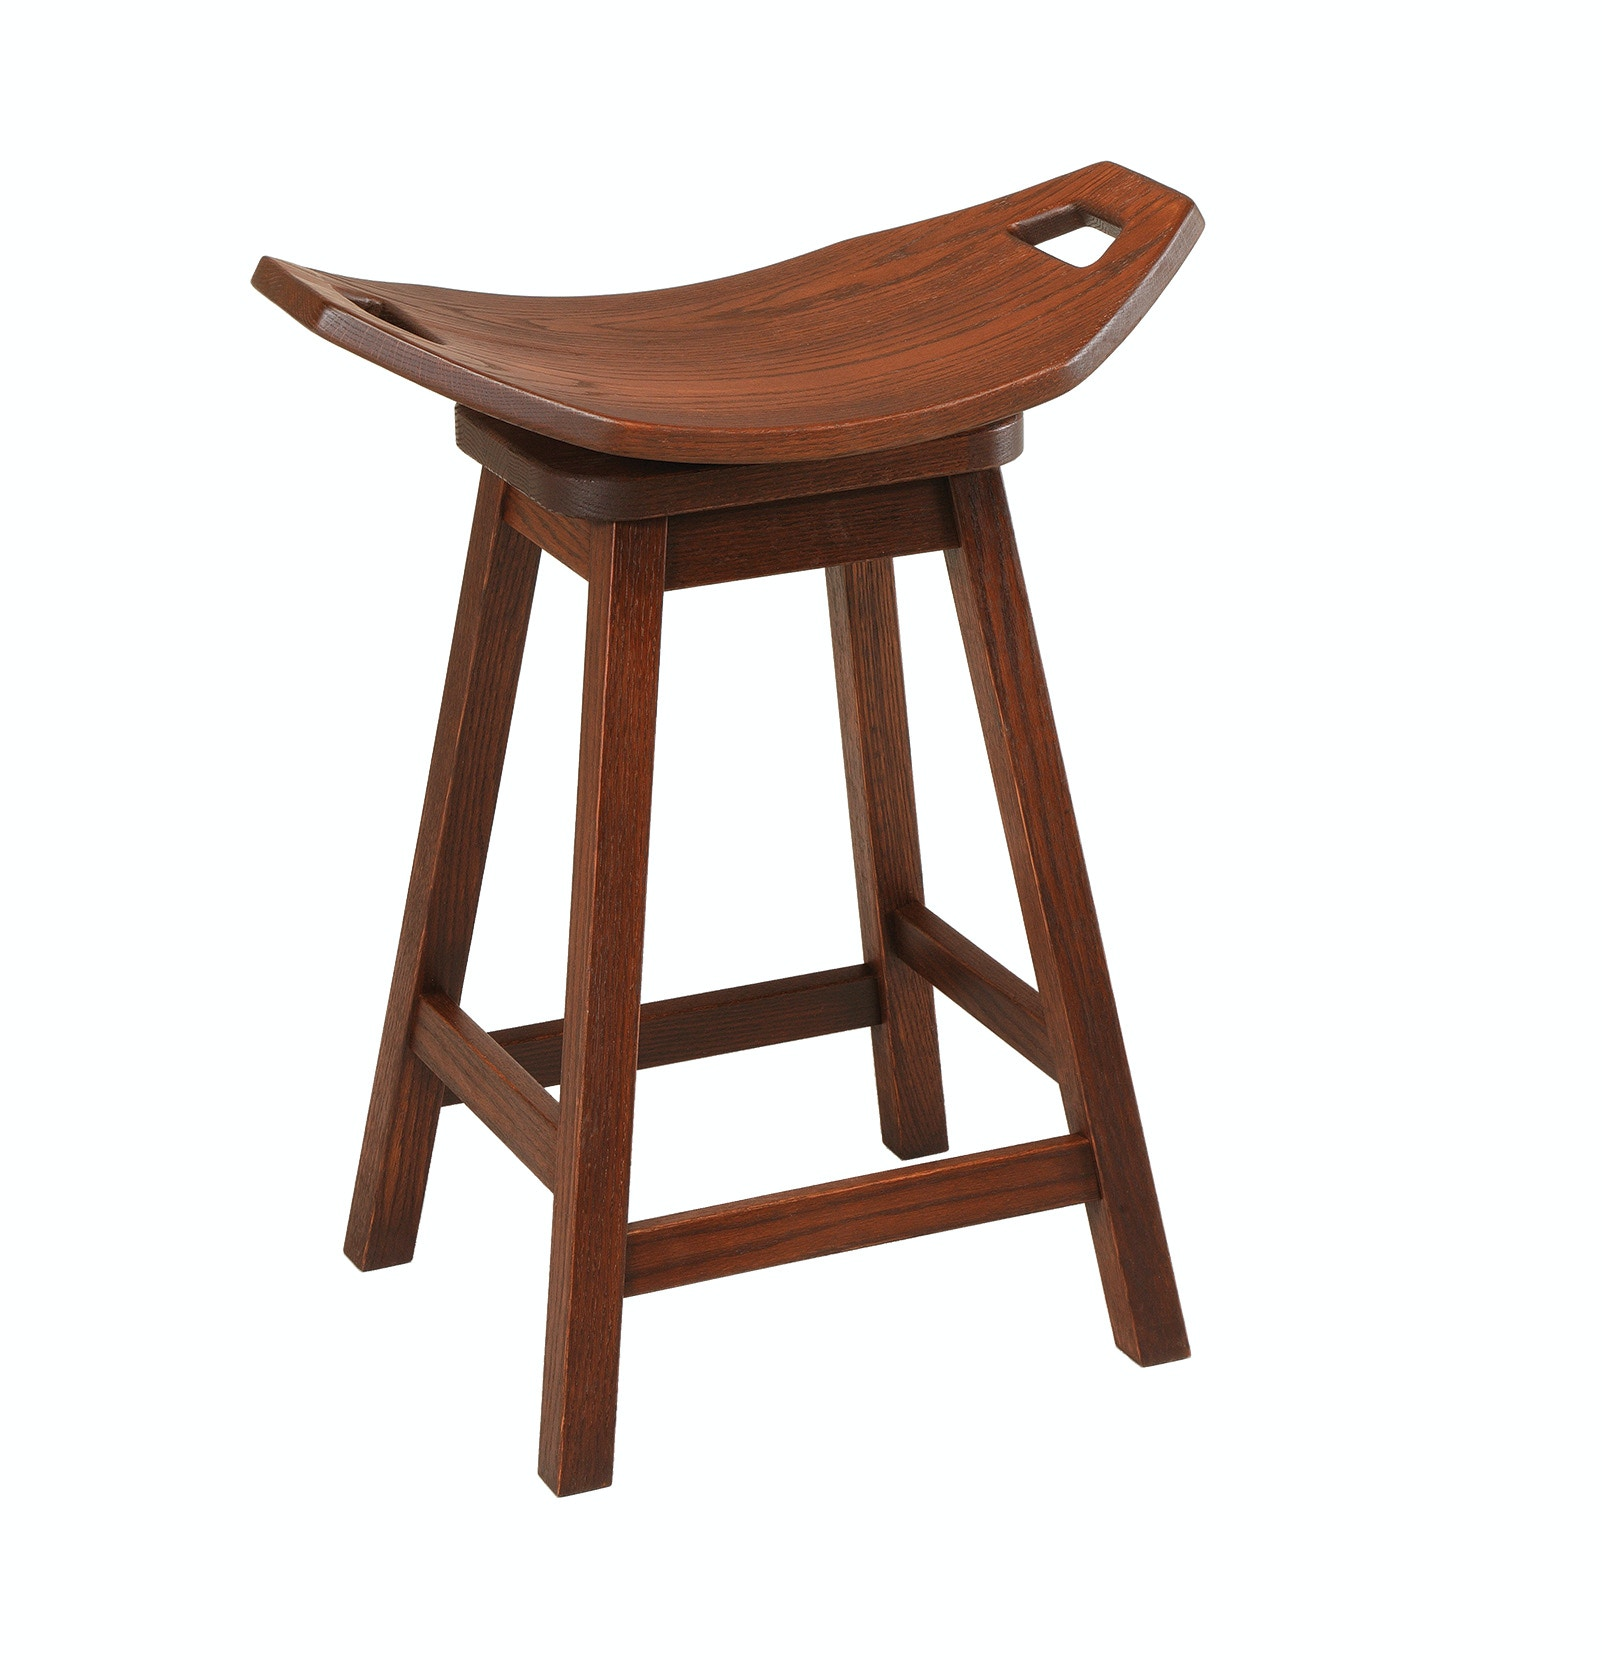 11 2220 10 Counter Stool American Oak And More Furniture Store